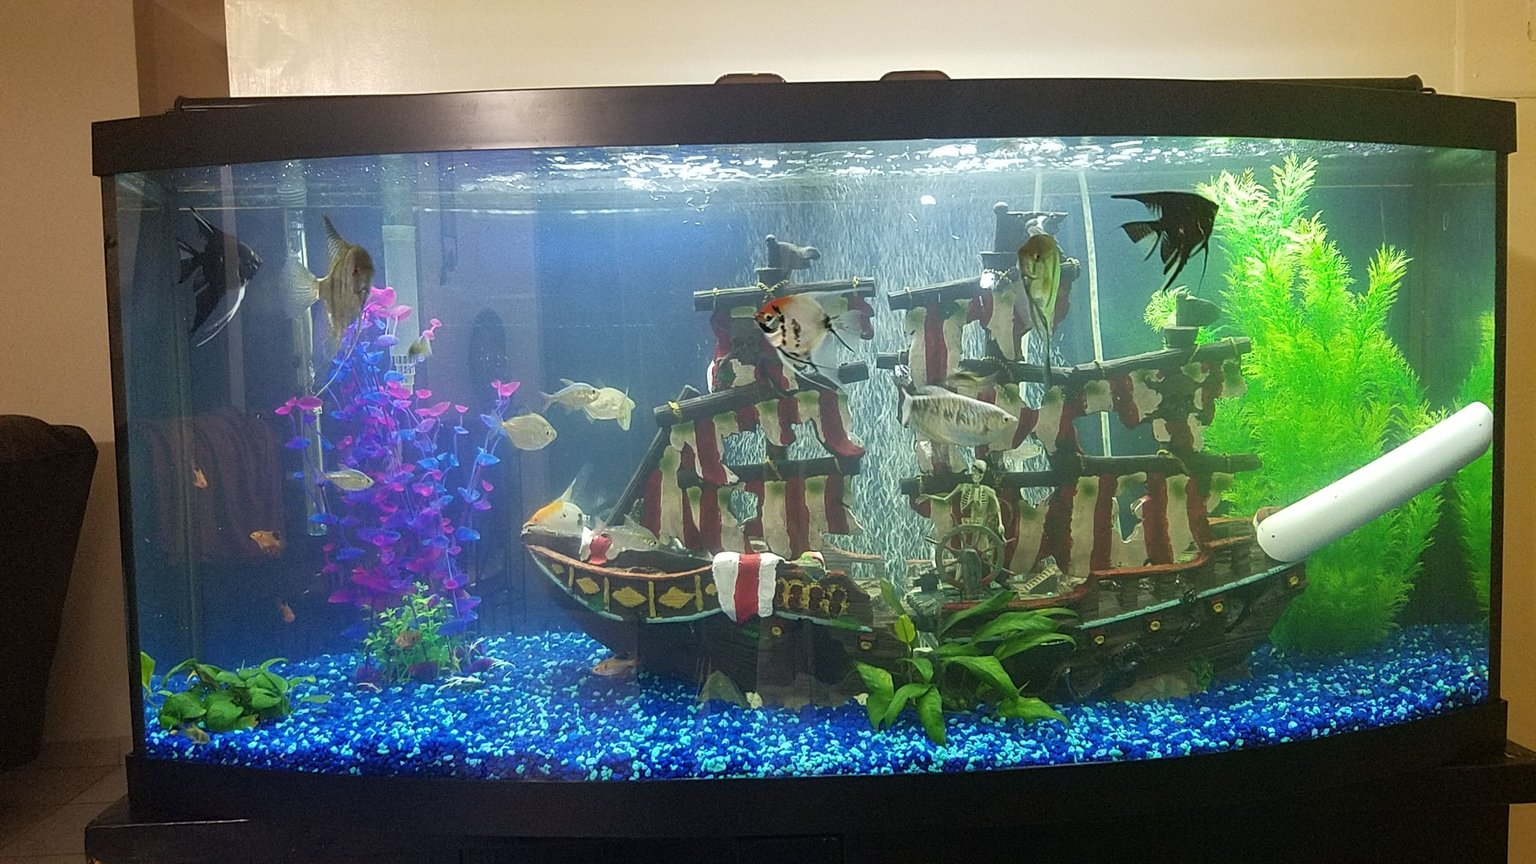 72 gallons freshwater fish tank (mostly fish and non-living decorations) - Three weeks Tank